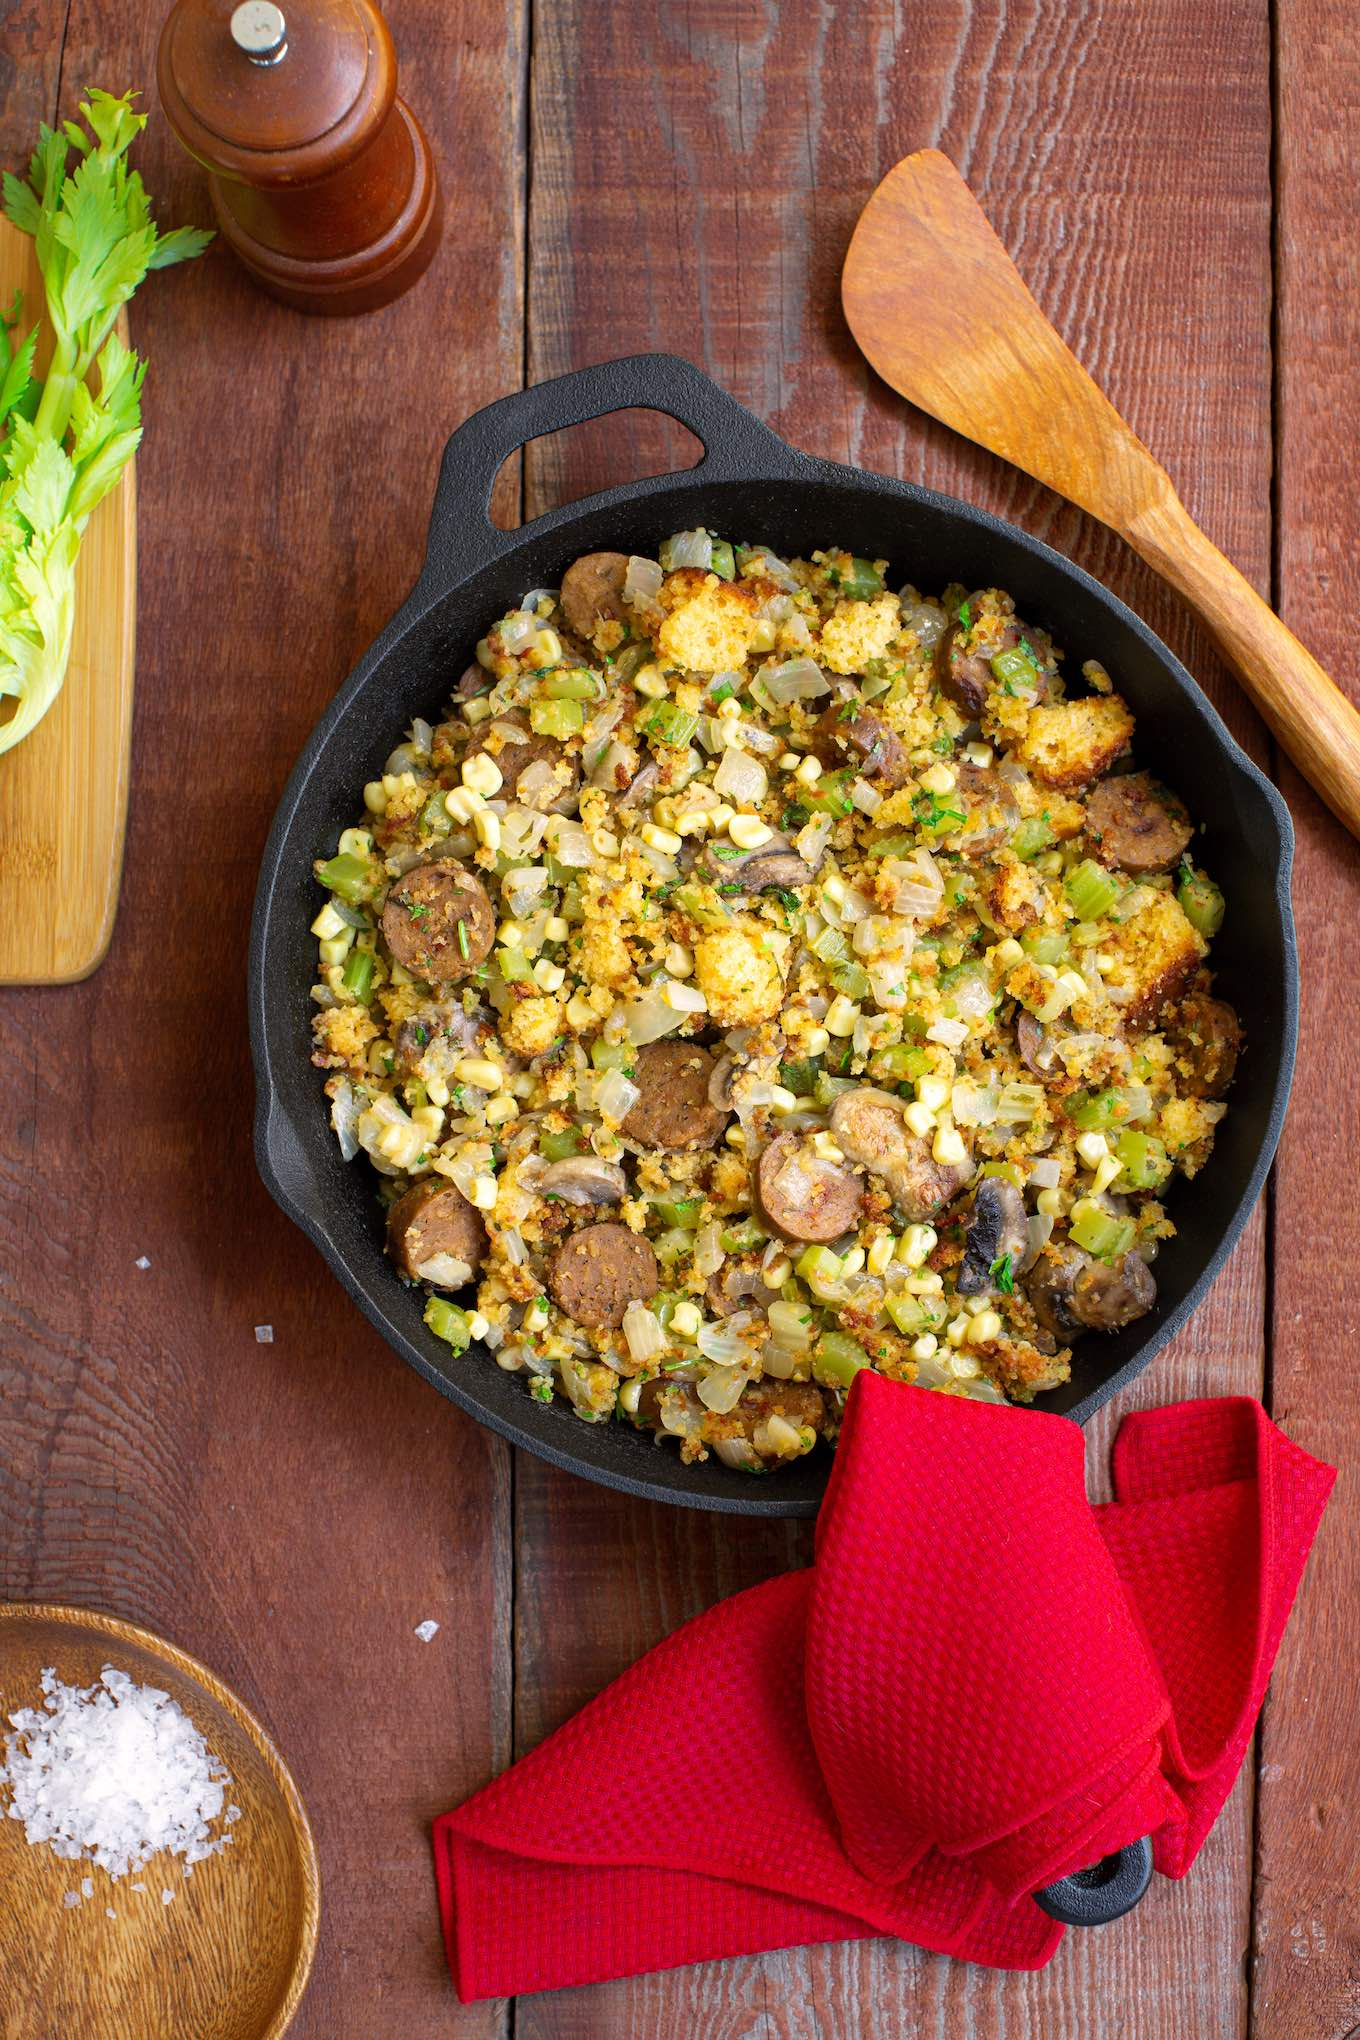 Skillet cornbread stuffing with vegan sausage and mushrooms